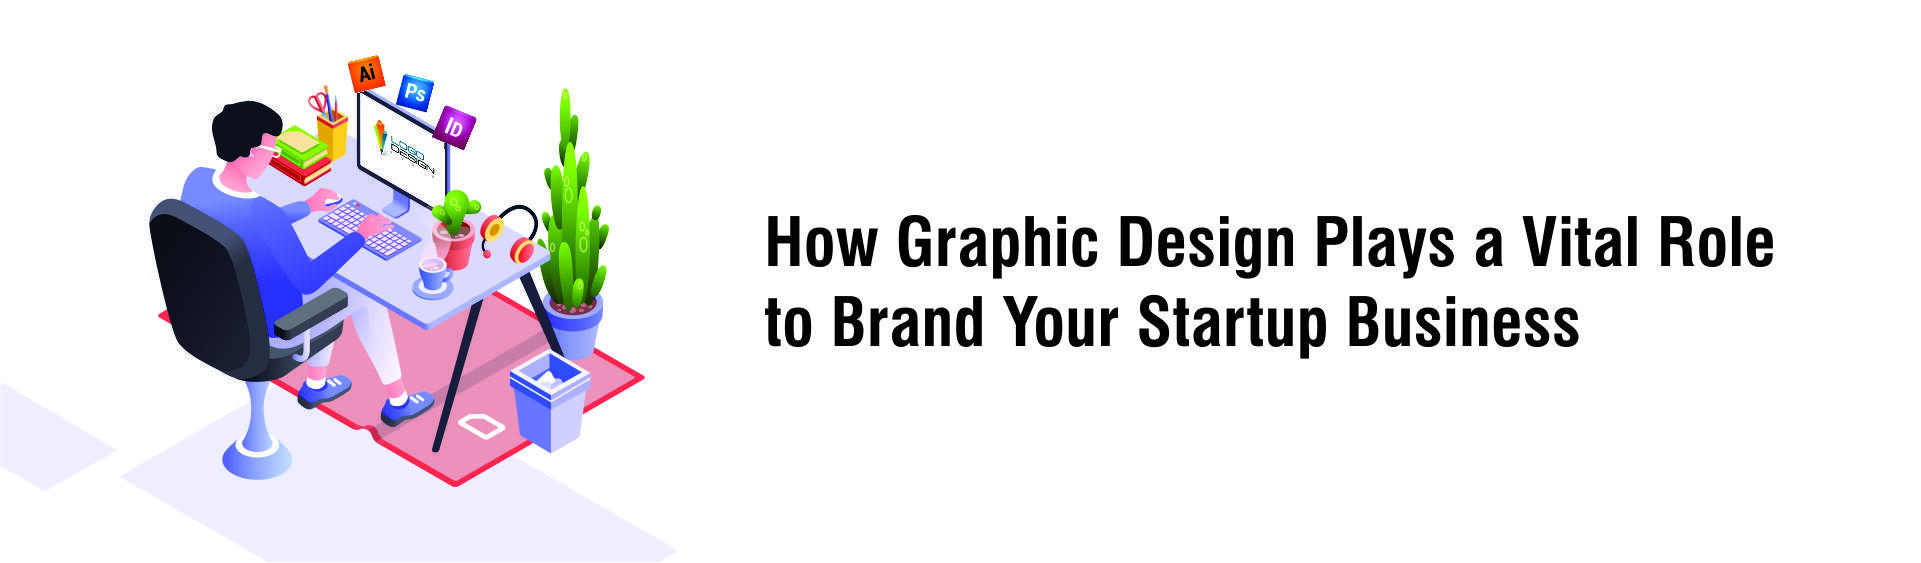 How Graphic Design Plays A Vital Role To Brand Your Startup Business